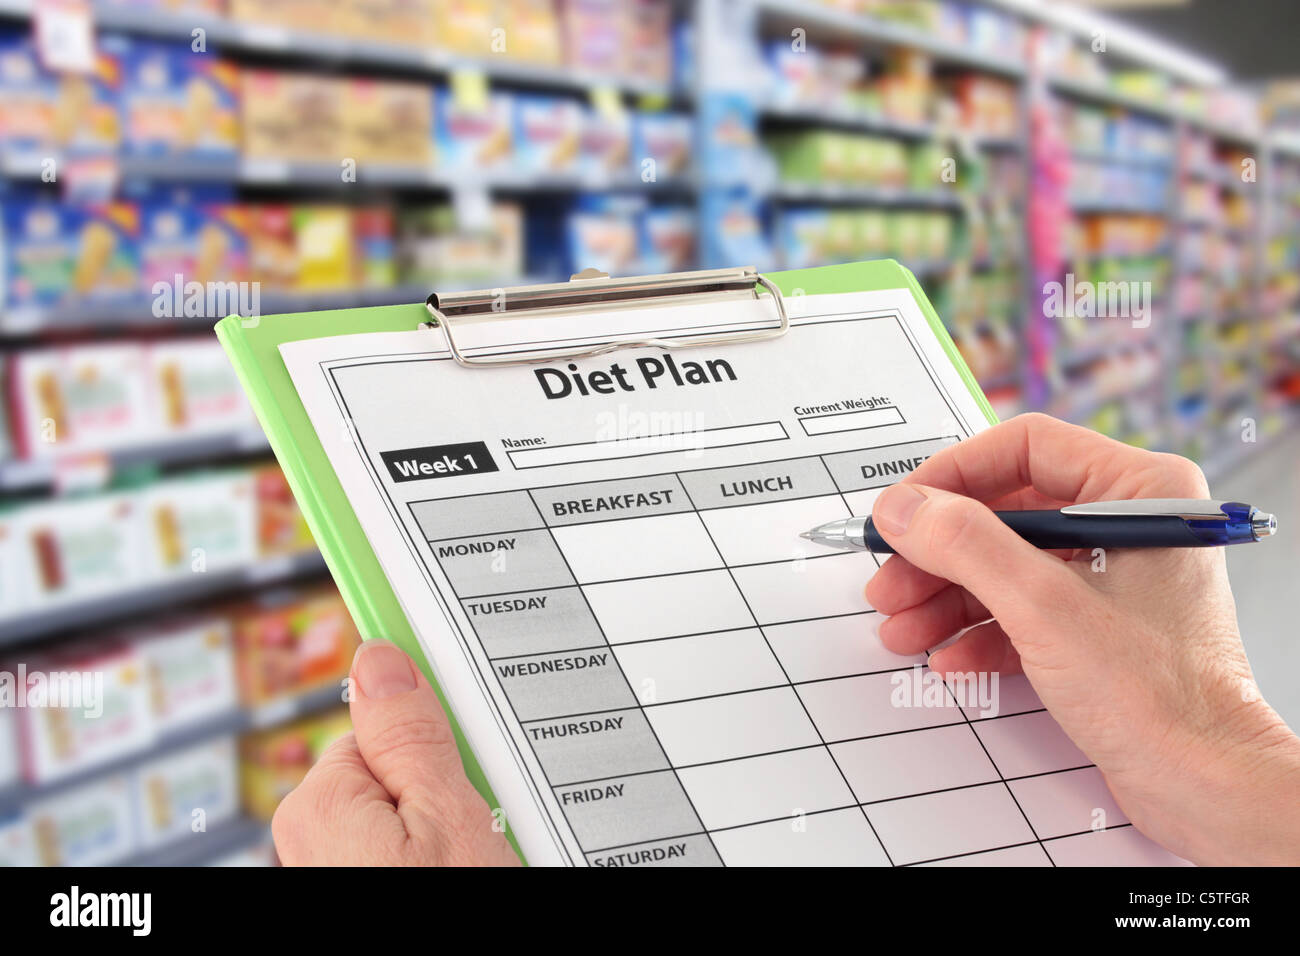 Writing a Diet Plan in the Supermarket - Stock Image